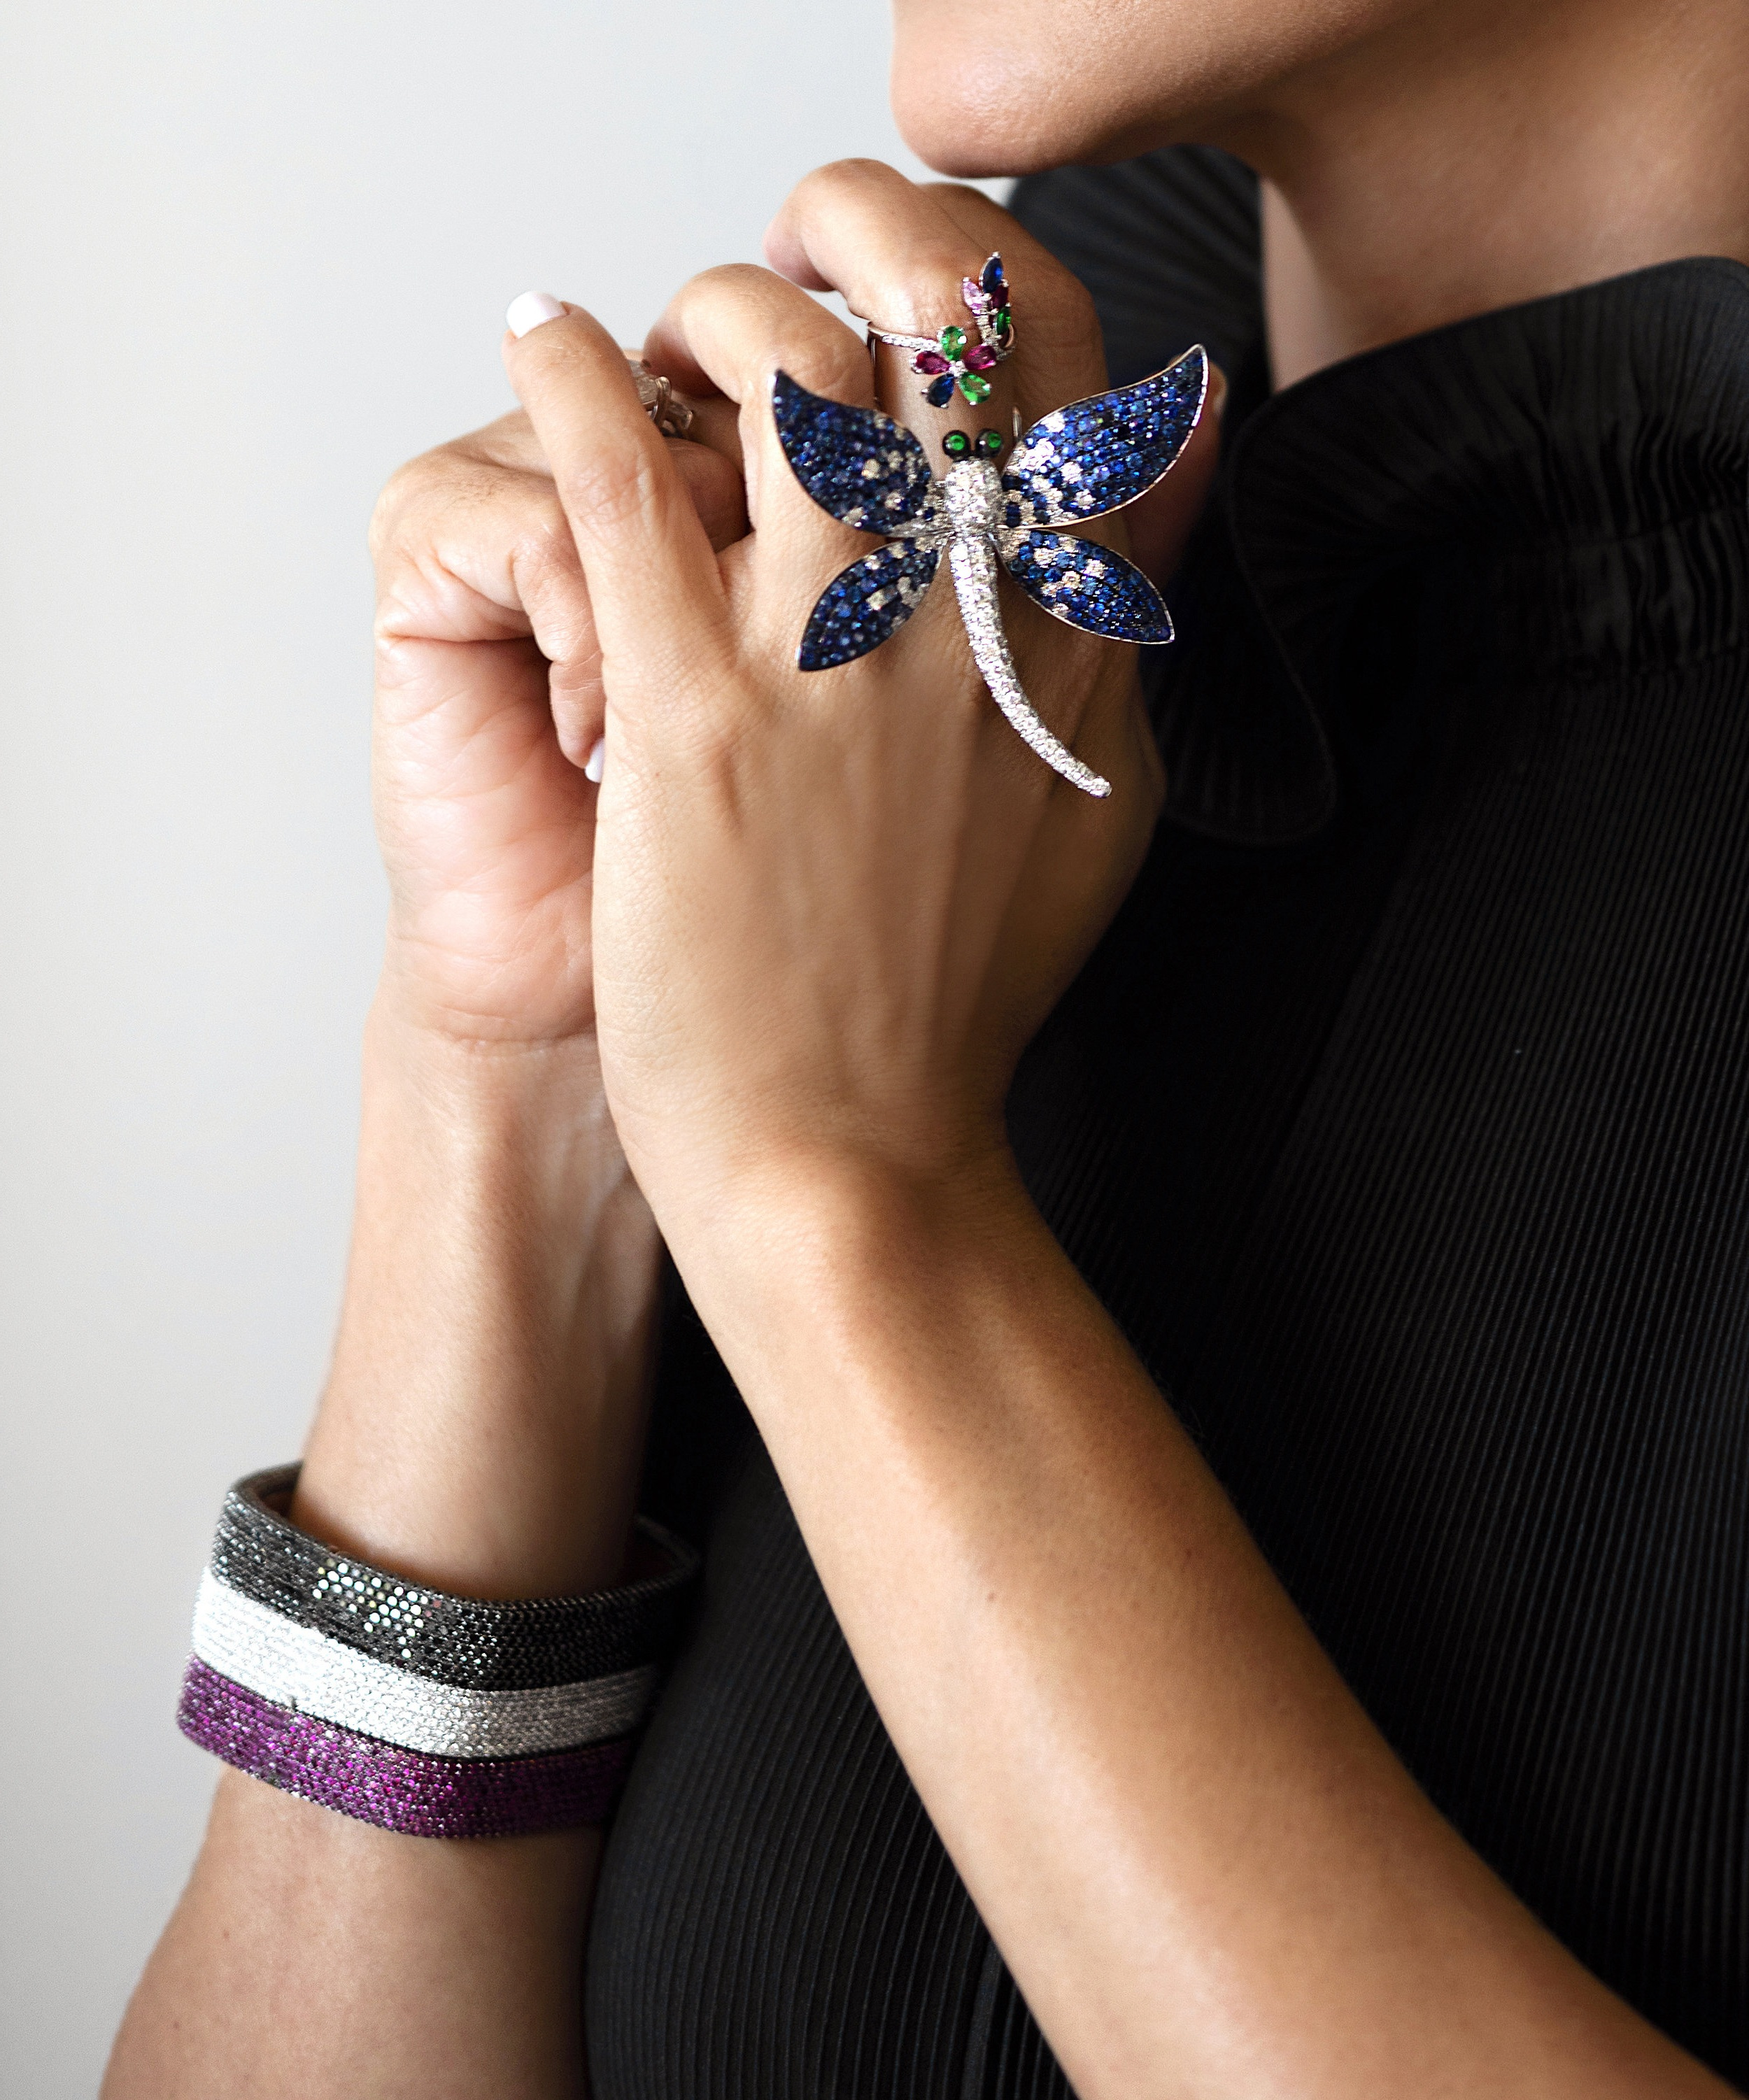 Patricia wears her signature square bangles in black diamonds, white diamonds and rubies, all in 18k gold. Her sapphire dragonfly ring is also hand made in 18k white gold.